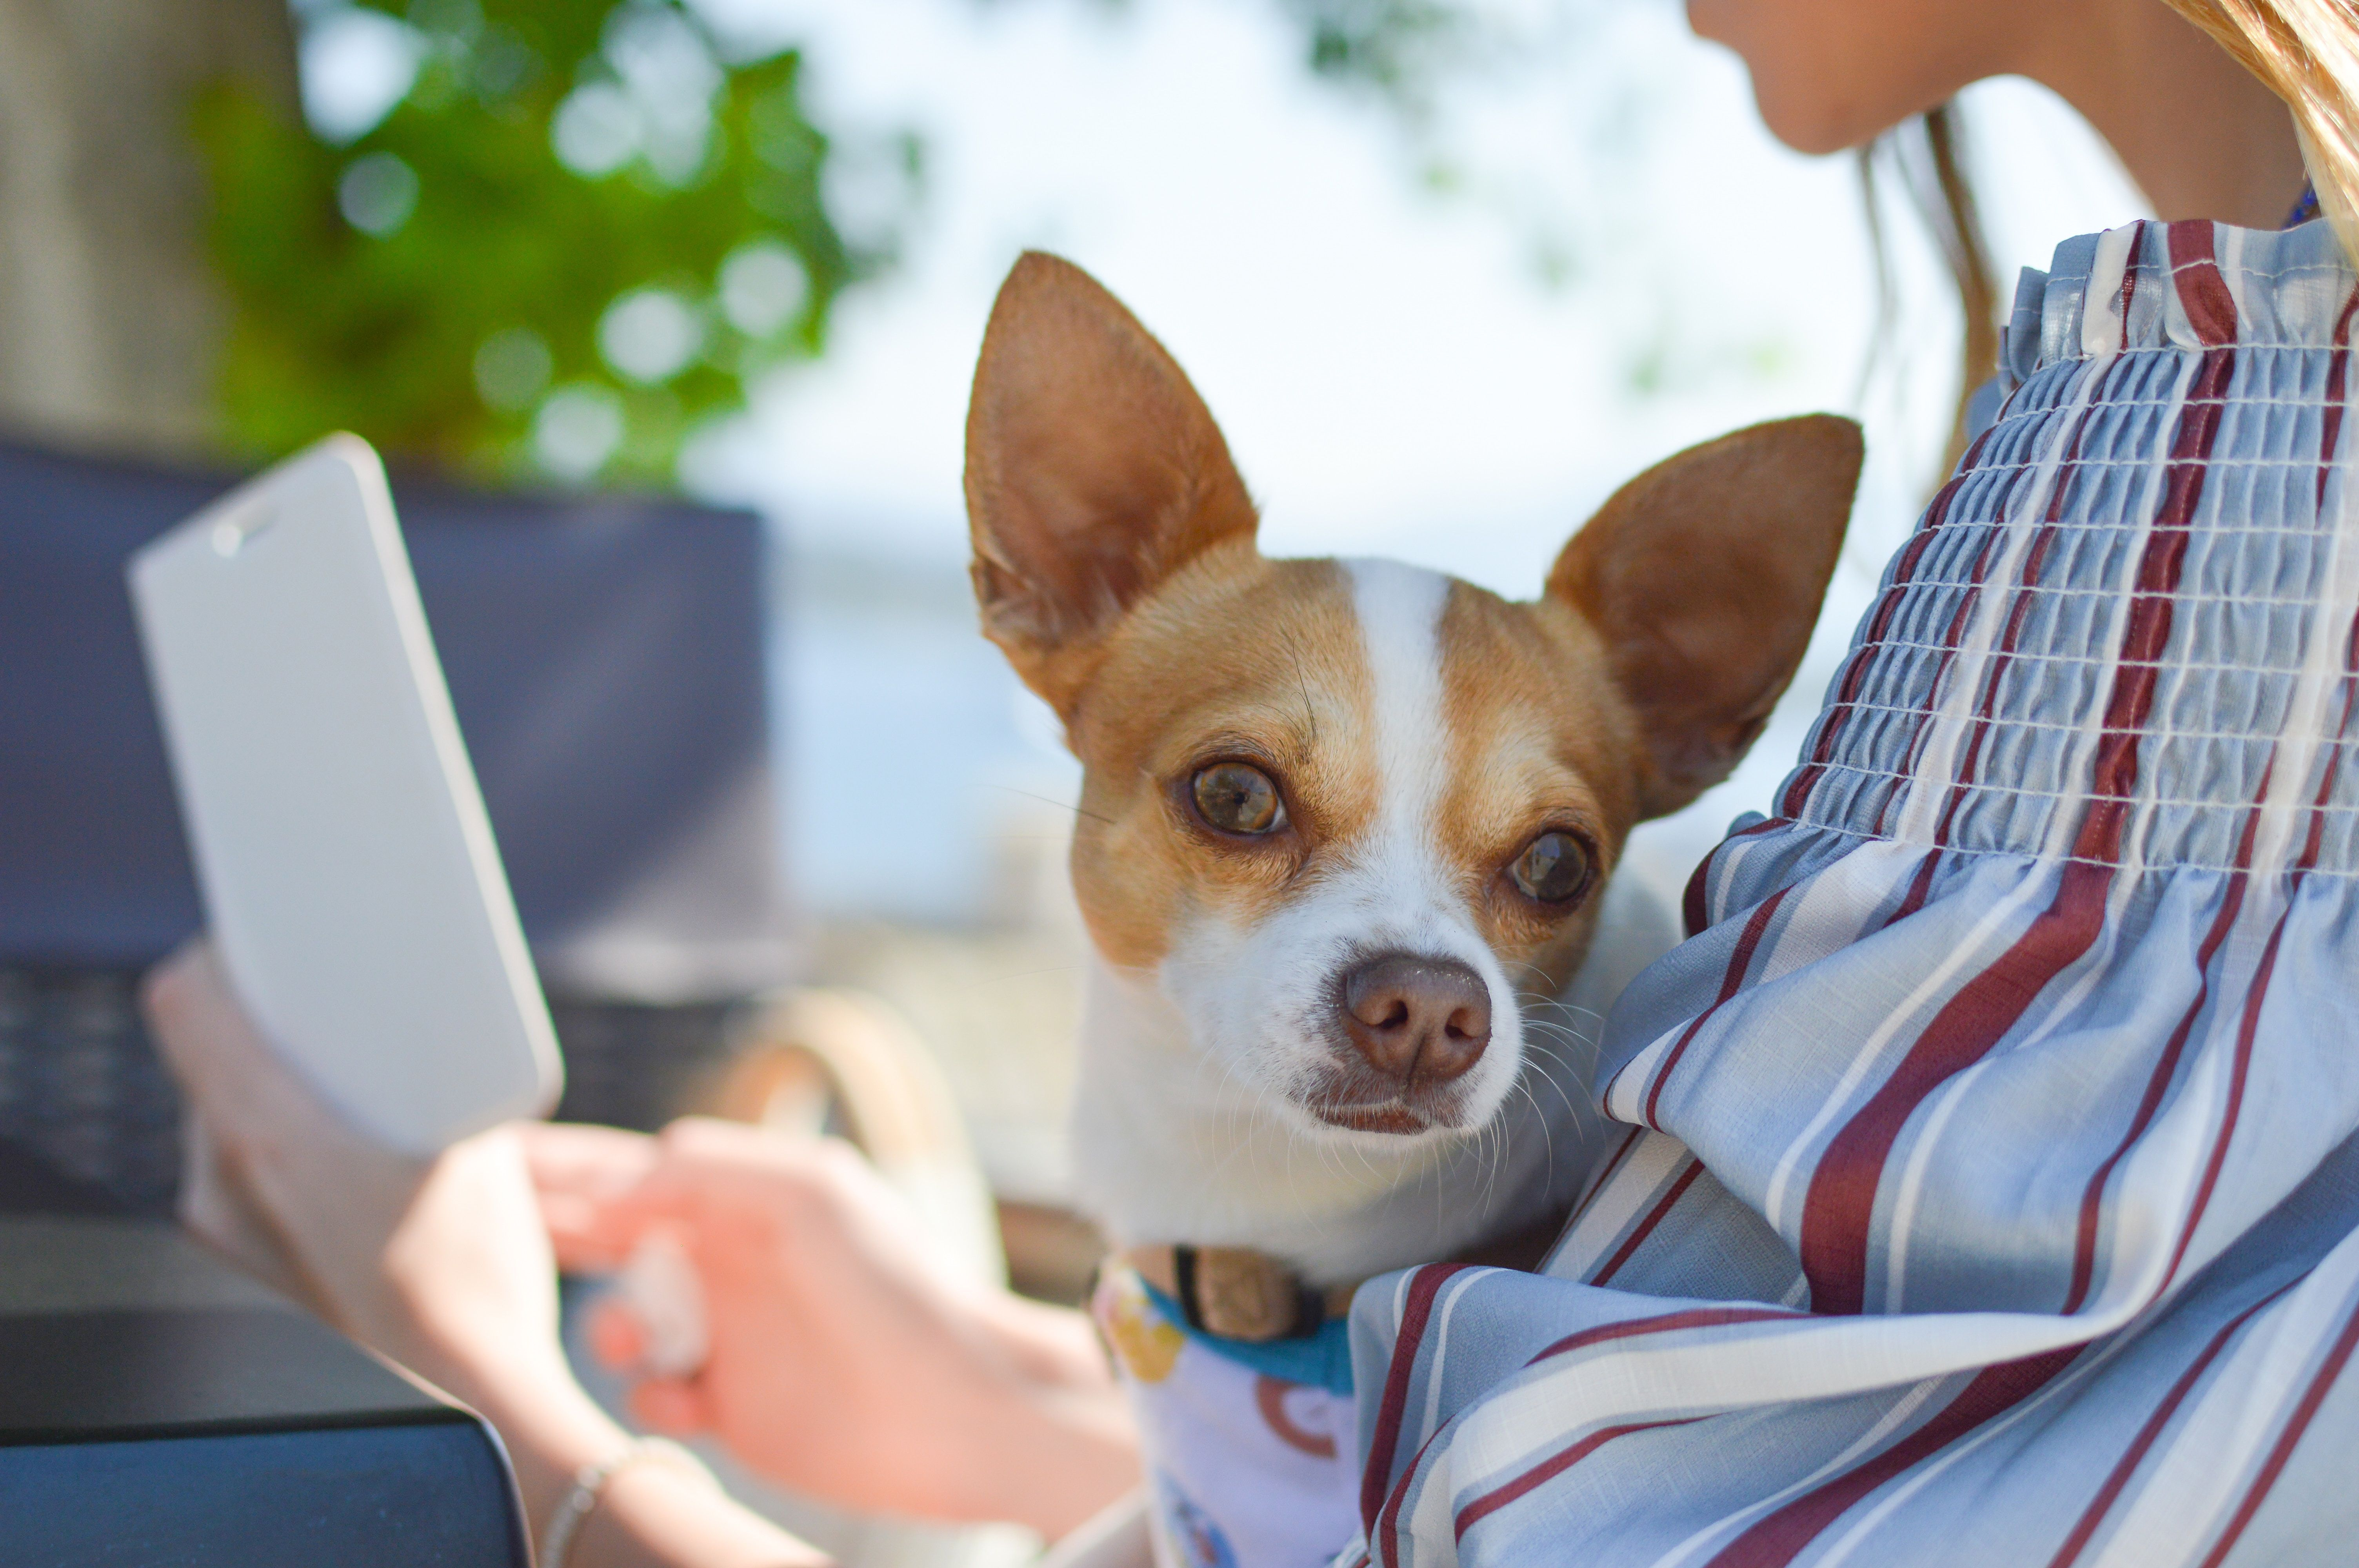 Join a community of people who are passionate about pets